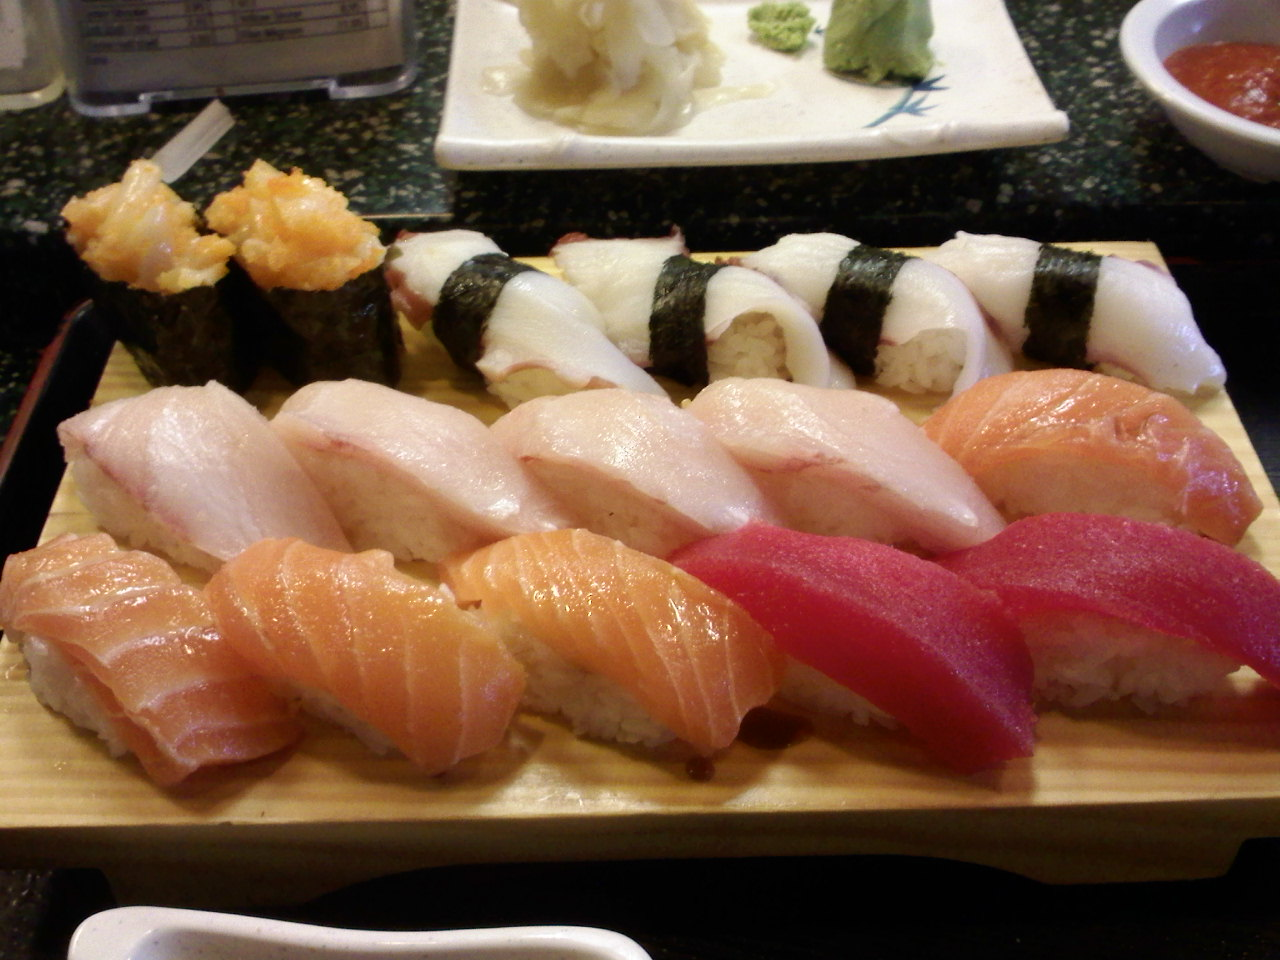 Fountain Valley :: @ my favorite all you can eat sushi, made fresh in front of you.